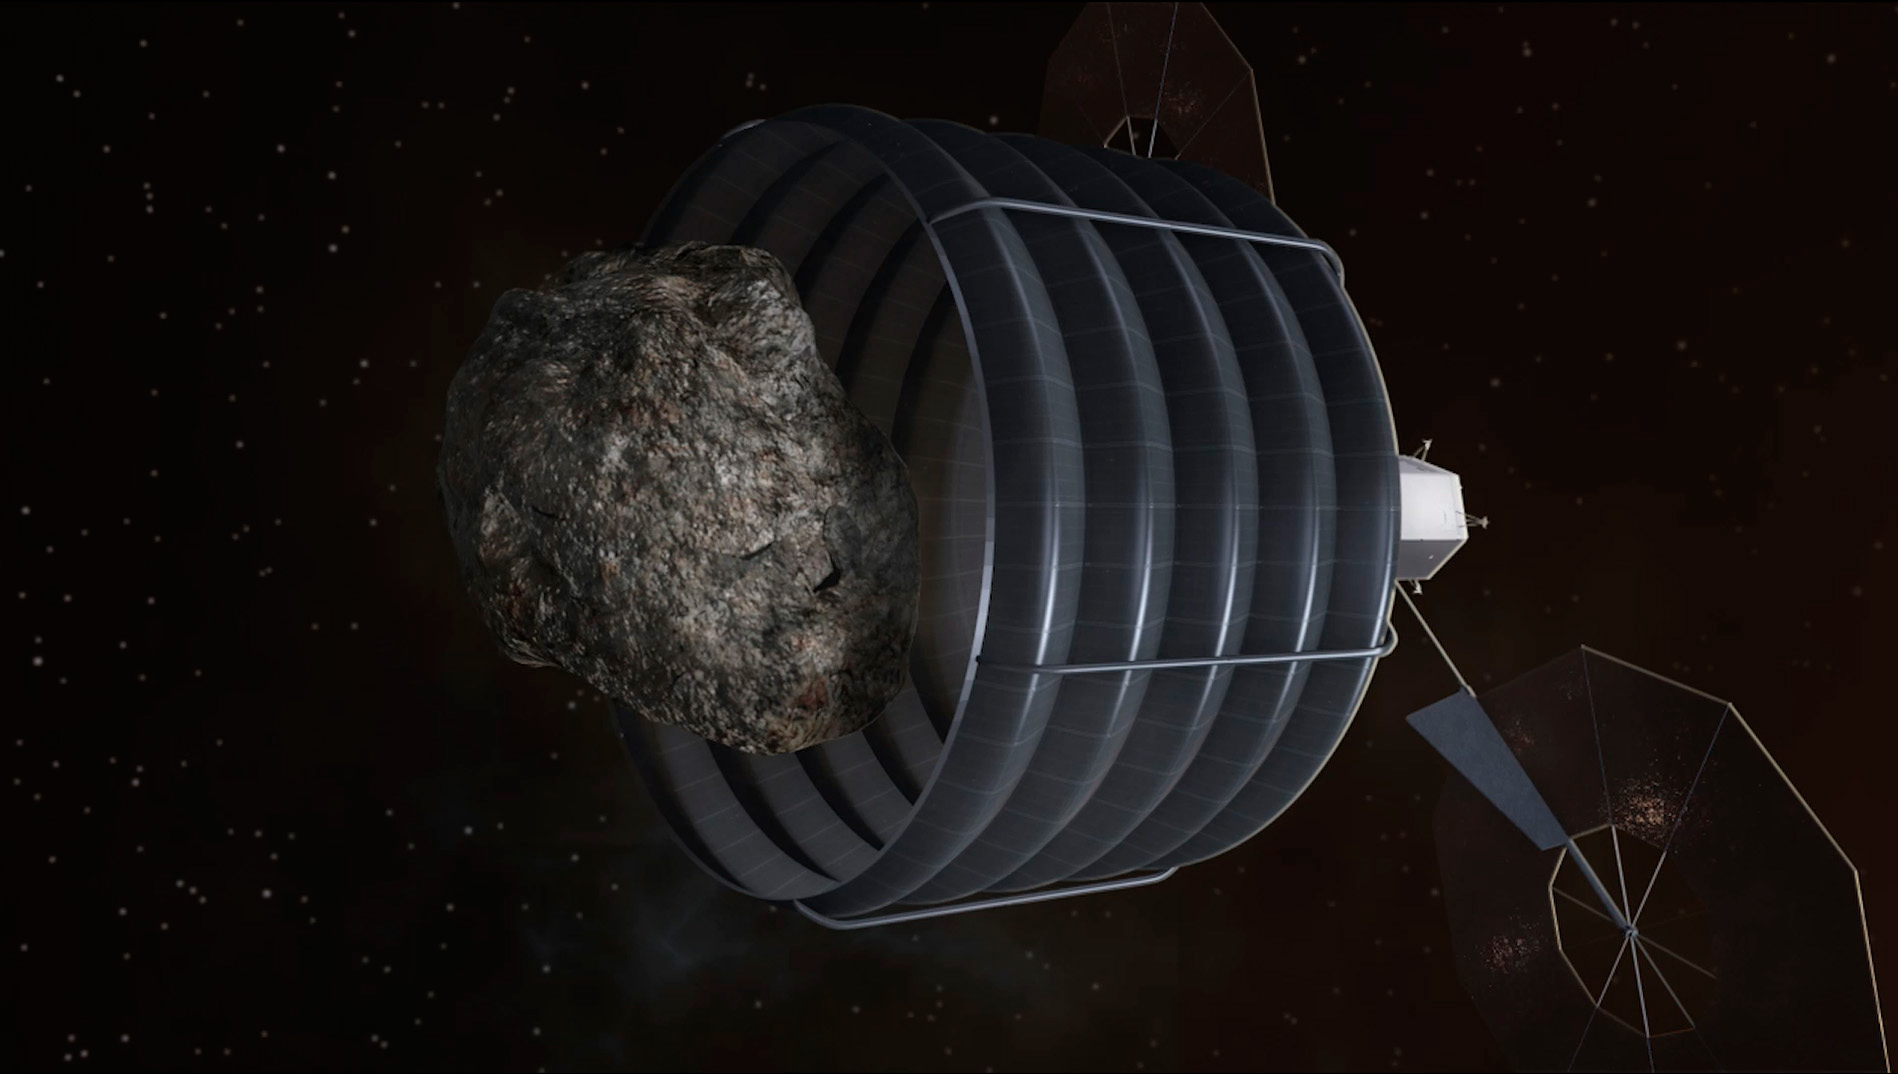 File:Asteroid capture.jpg - Wikimedia Commons